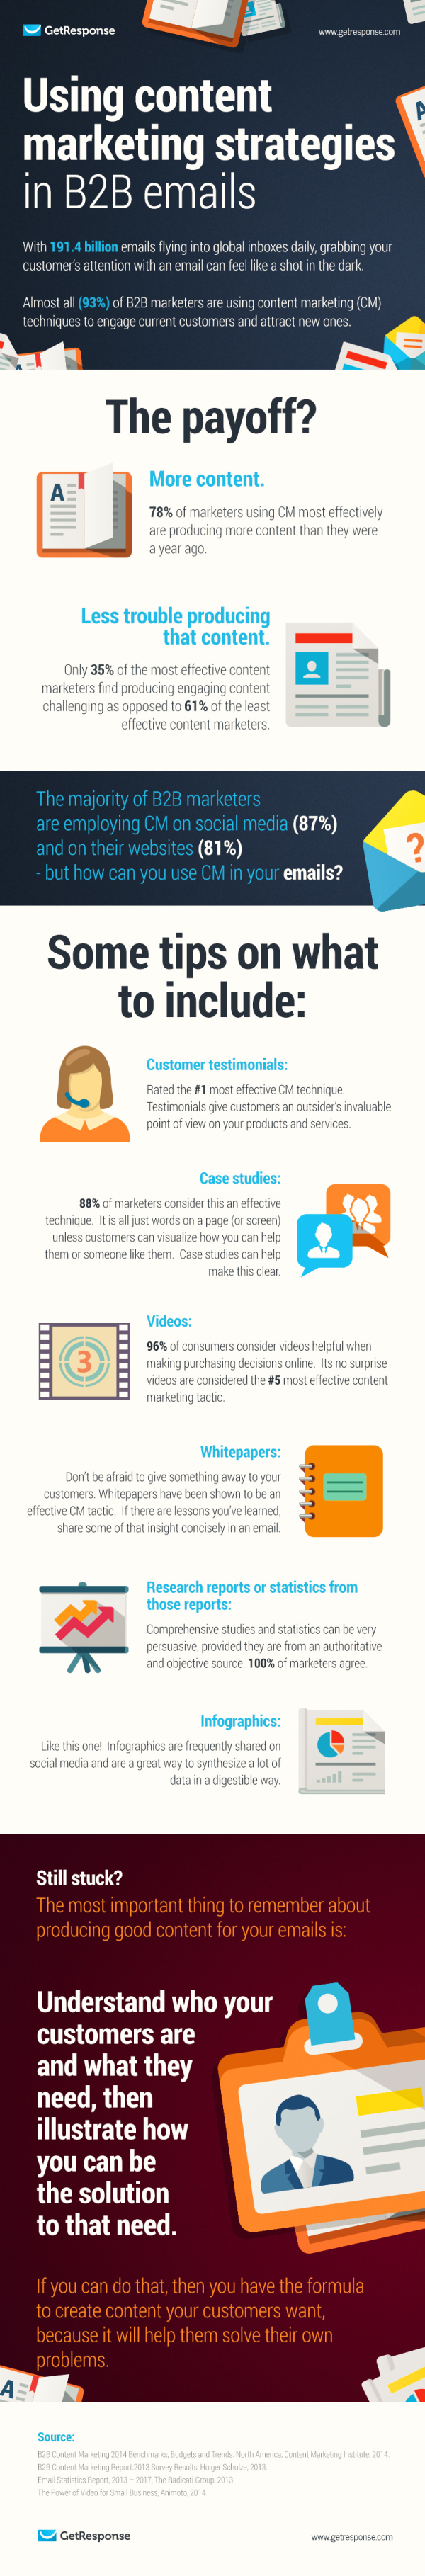 Infographic - Using Content Marketing Strategies In B2B Emails